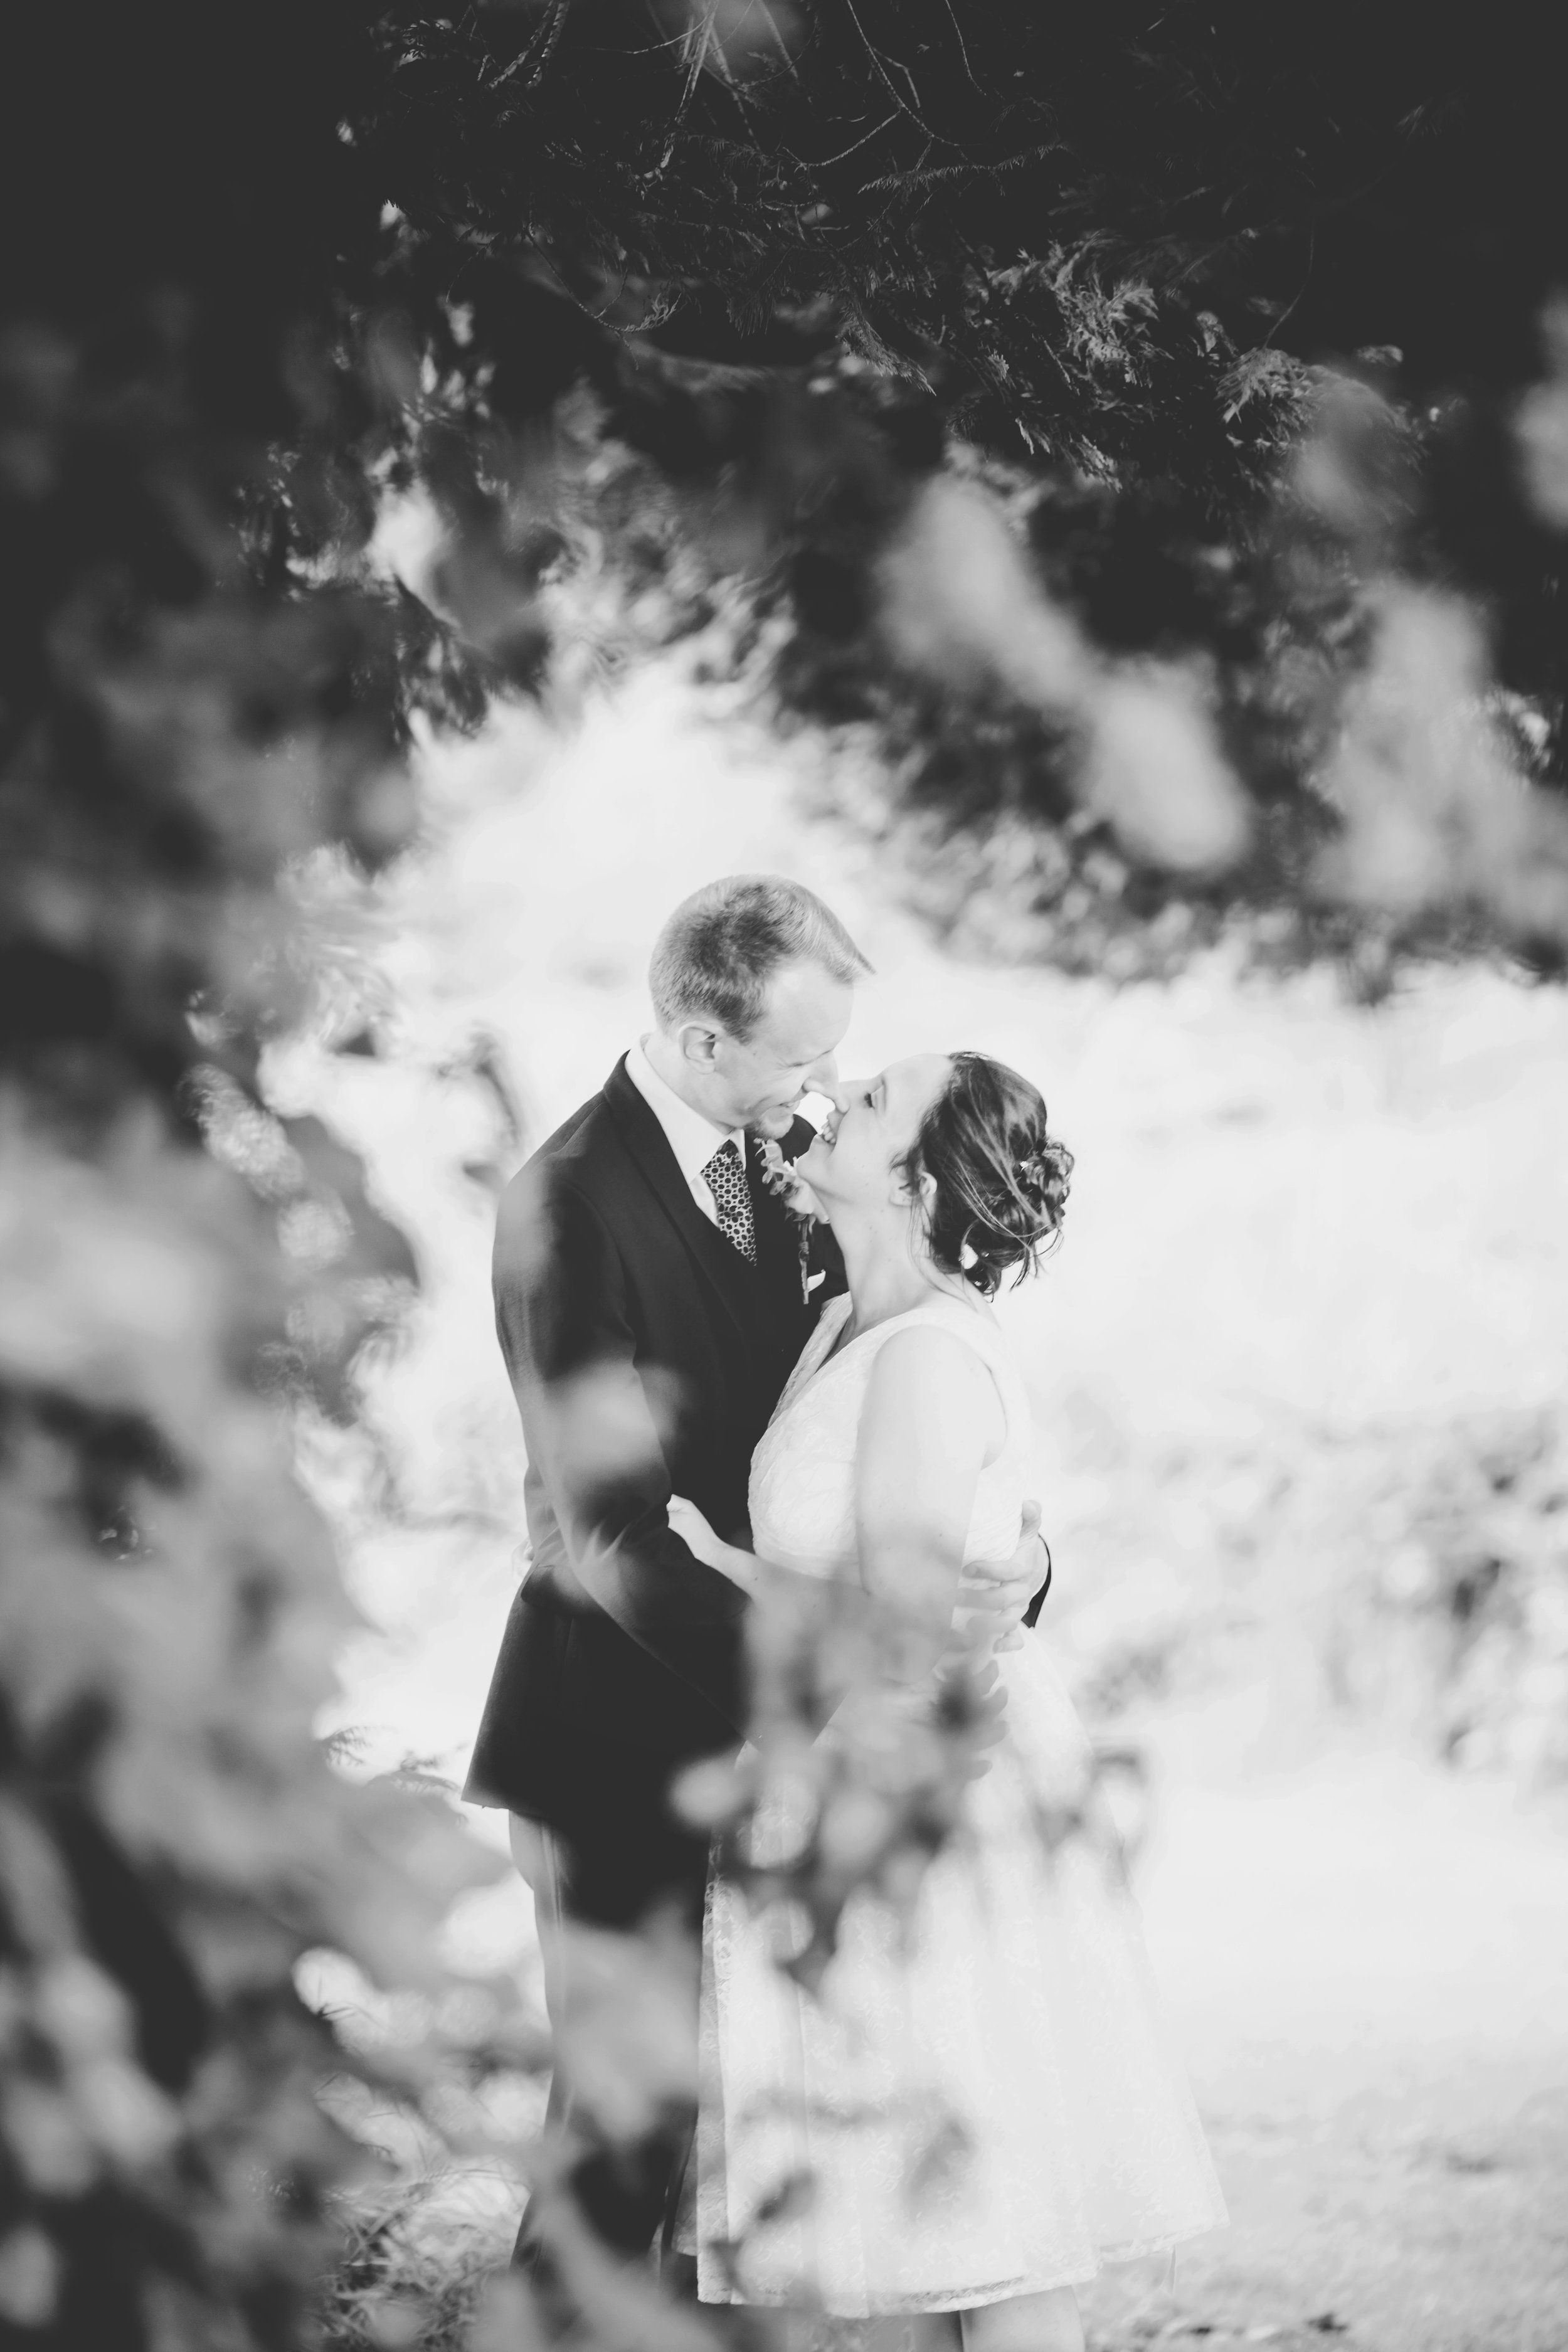 intimate portraits - black and white wedding photography